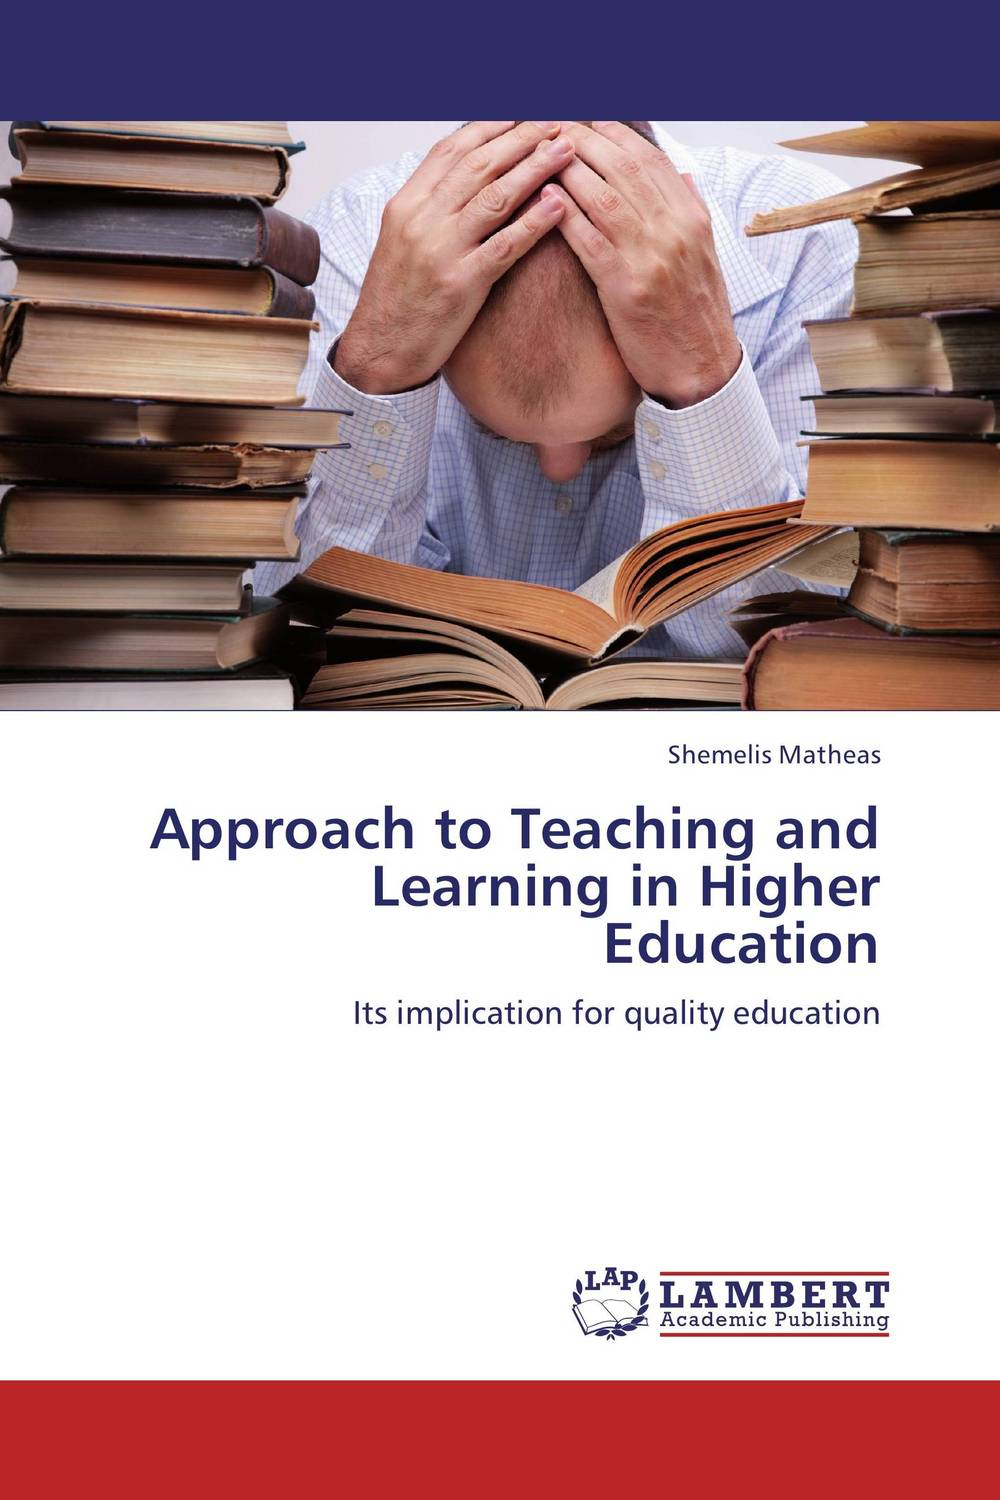 Approach to Teaching and Learning in Higher Education peter stone layered learning in multiagent systems – a winning approach to robotic soccer